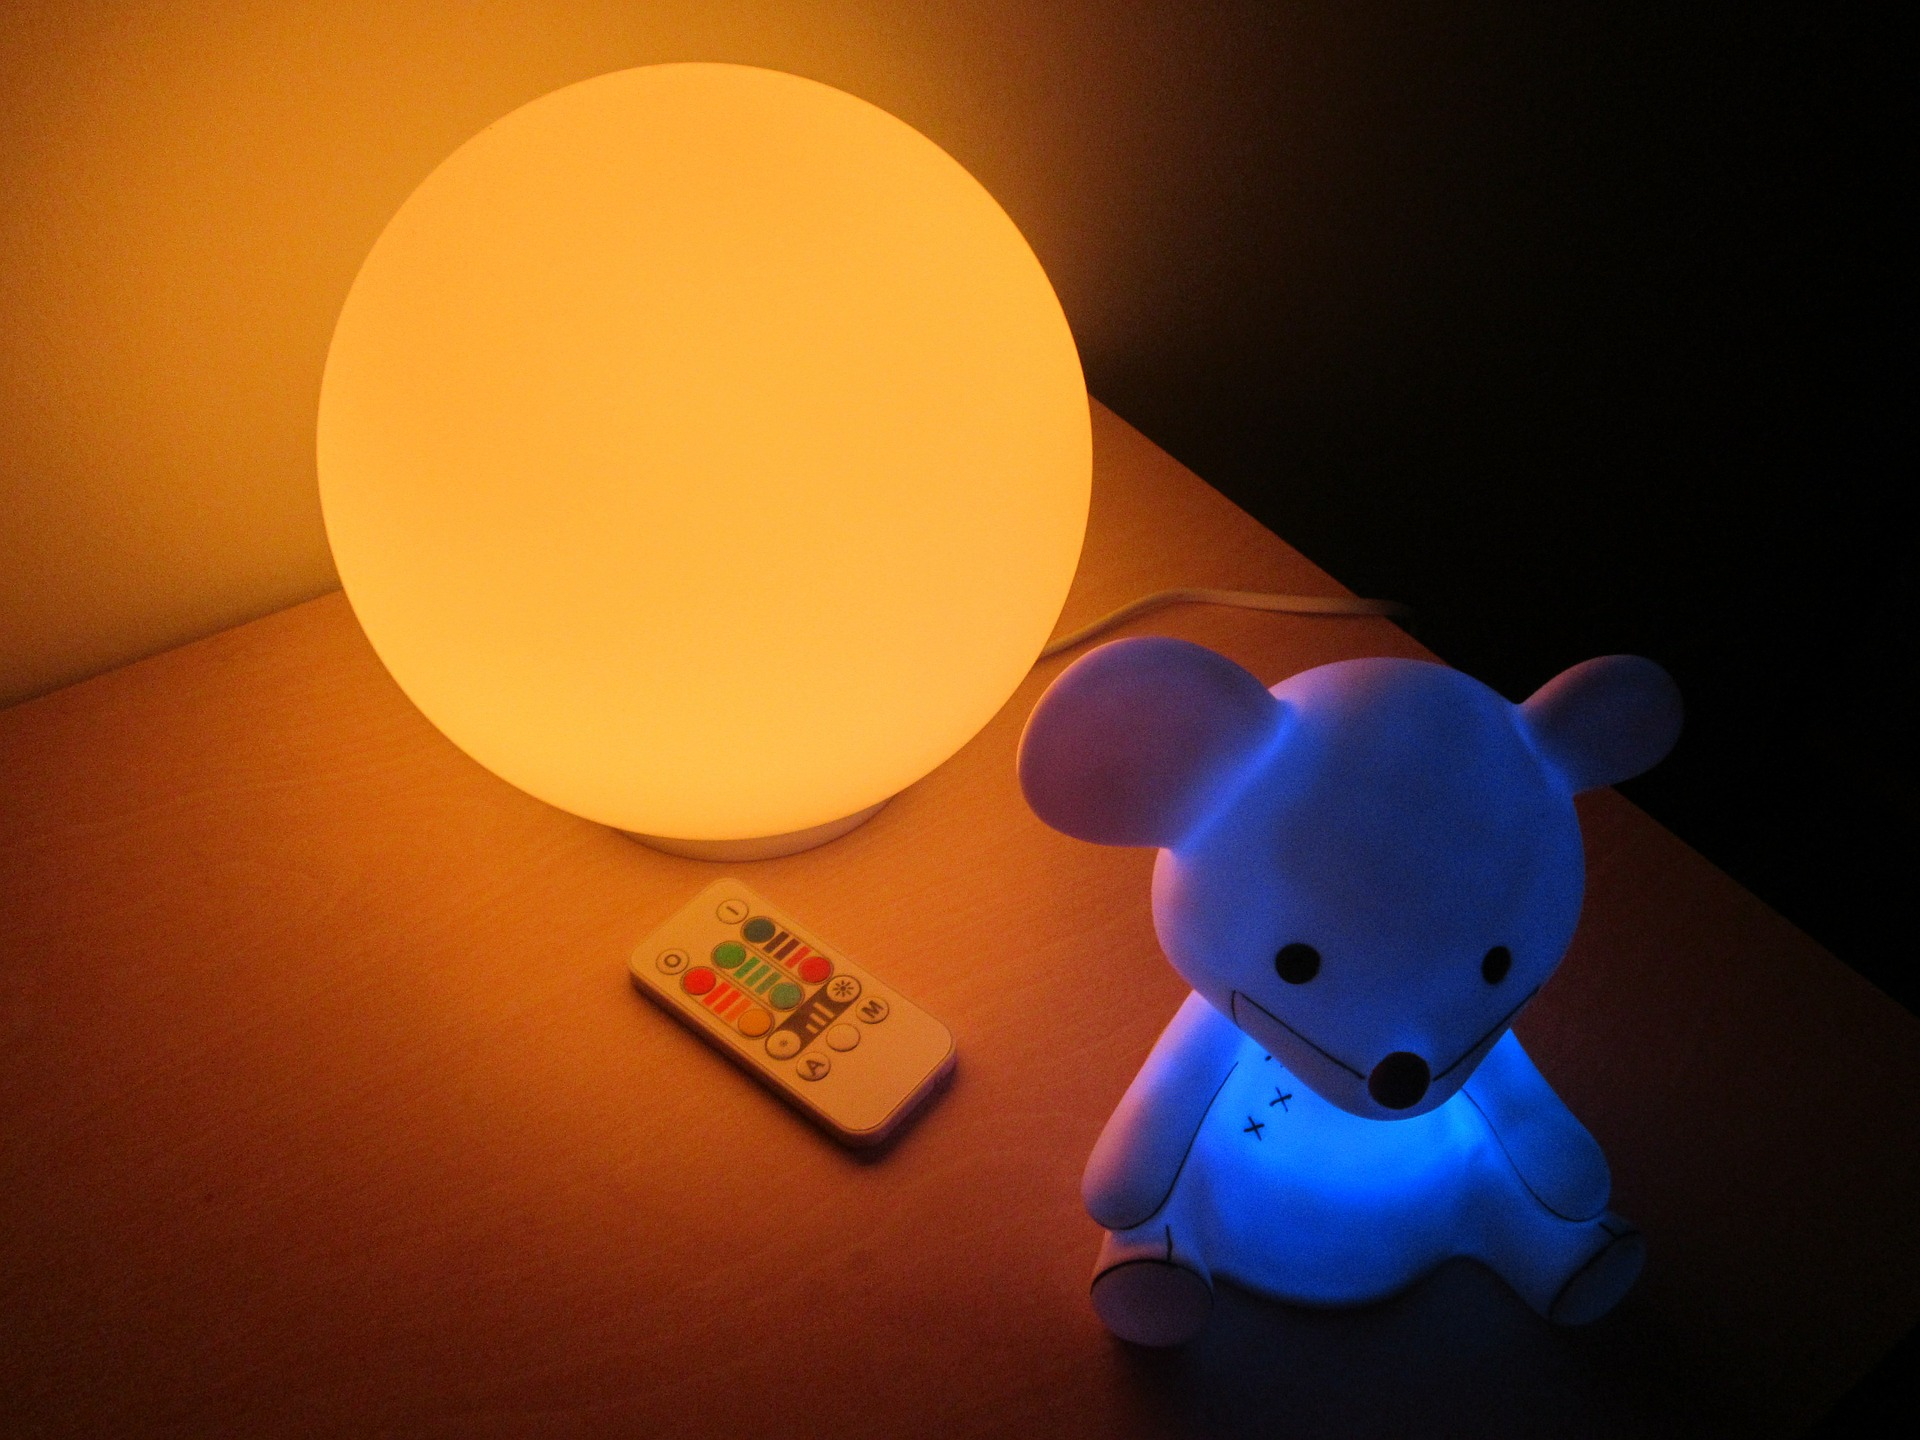 An in-depth review of the best nightlights available in 2019.